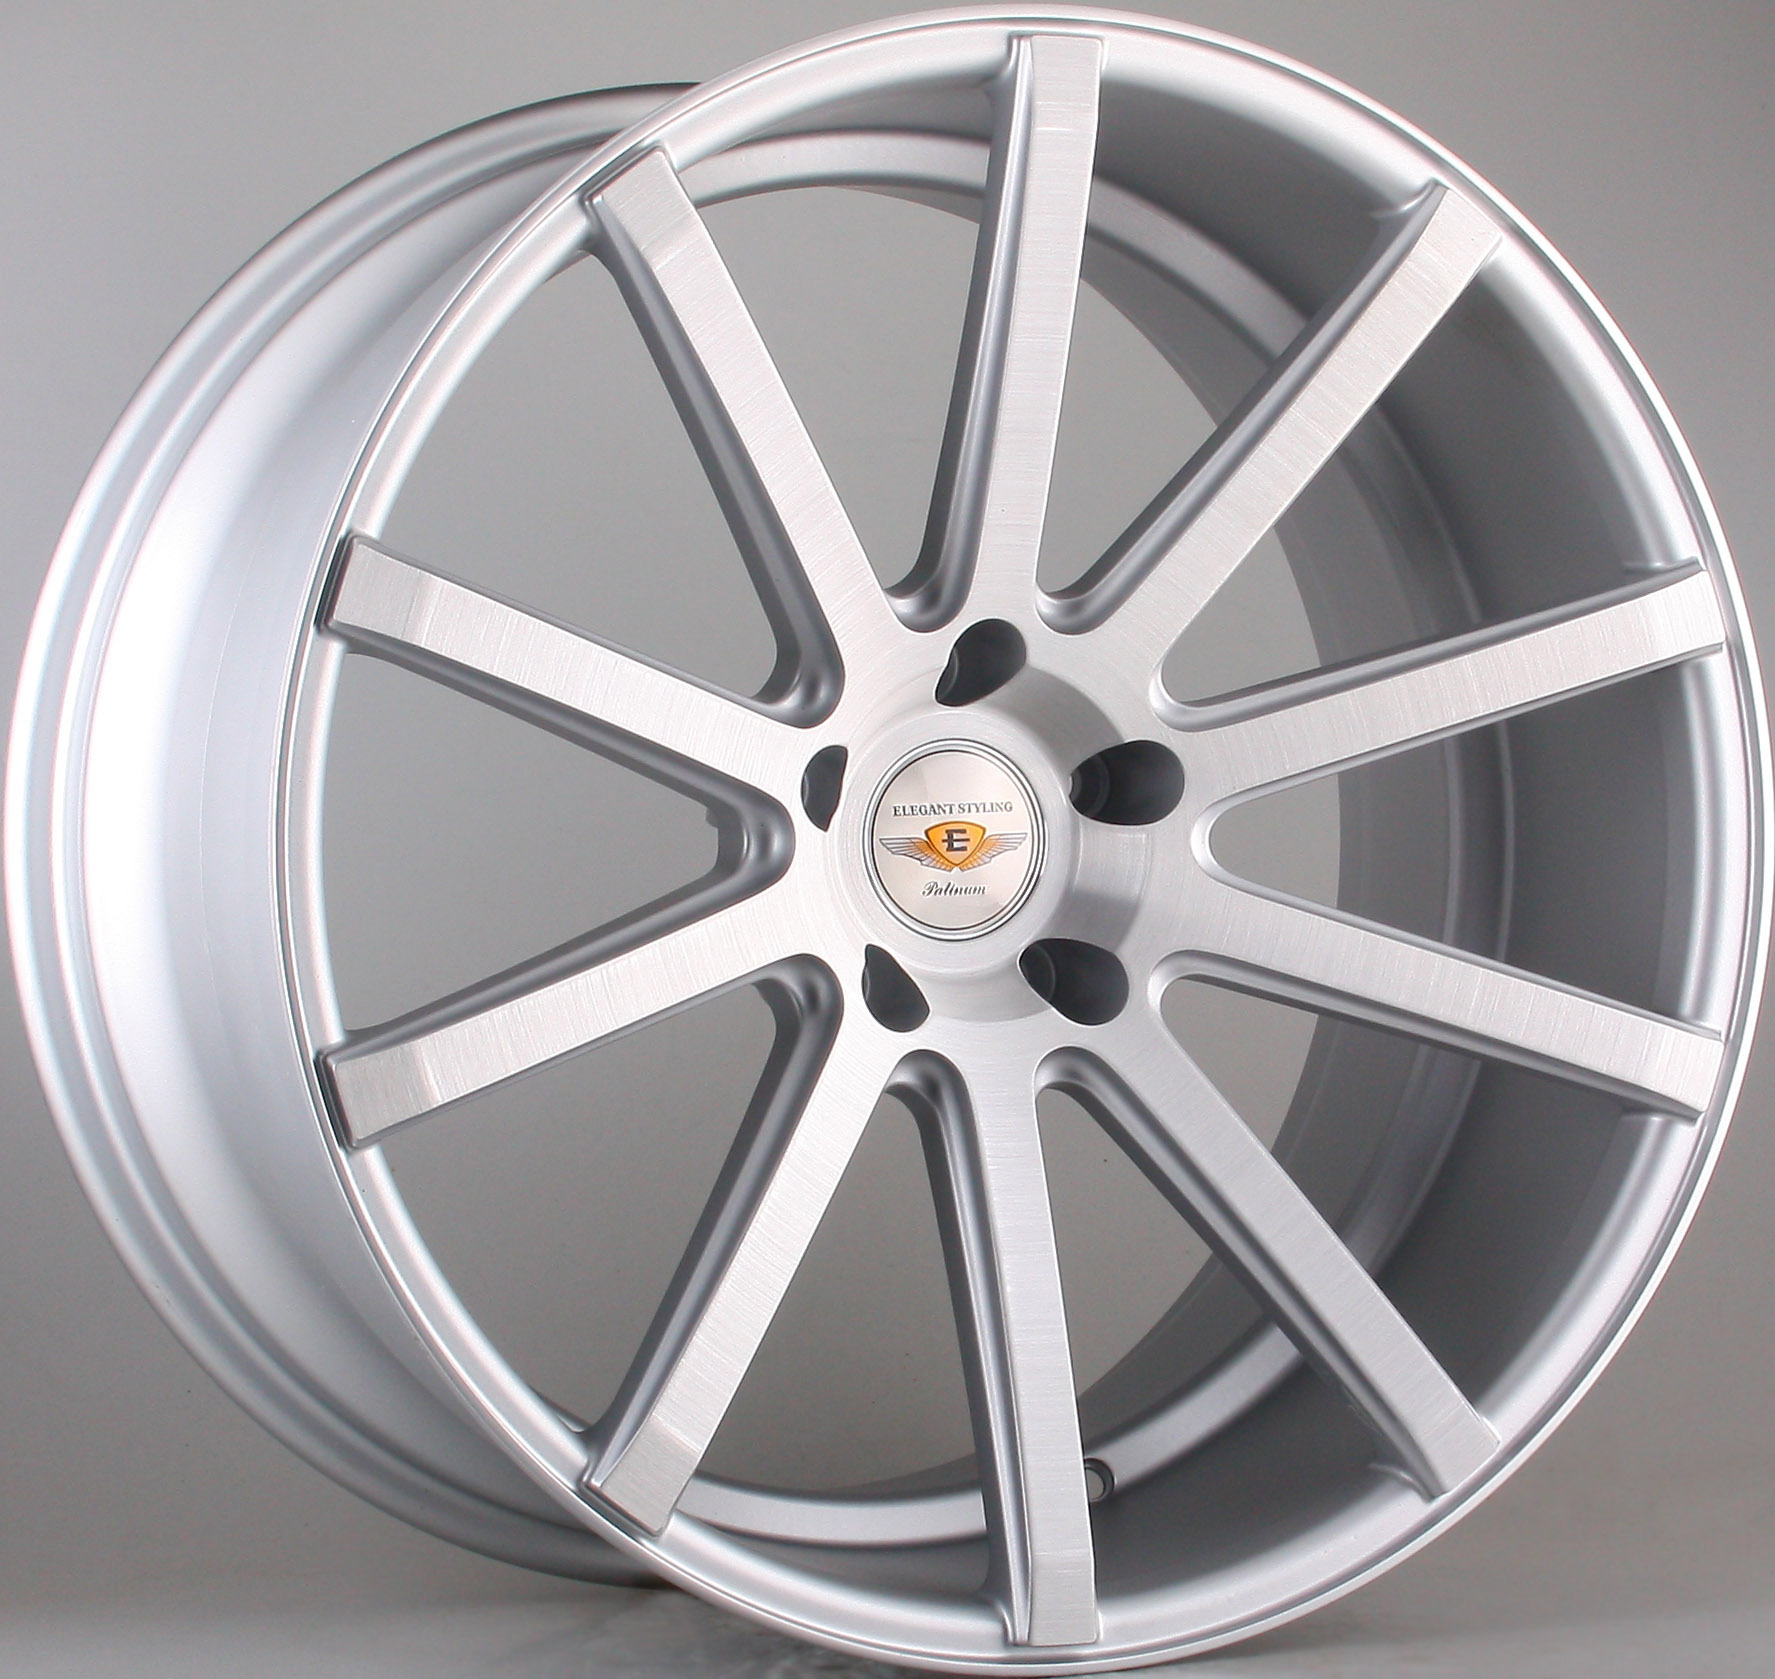 "NEW 20"" JUDD T202 ALLOY WHEELS IN SILVER WITH POLISHED FACE, WIDER 9.5"" REARS"